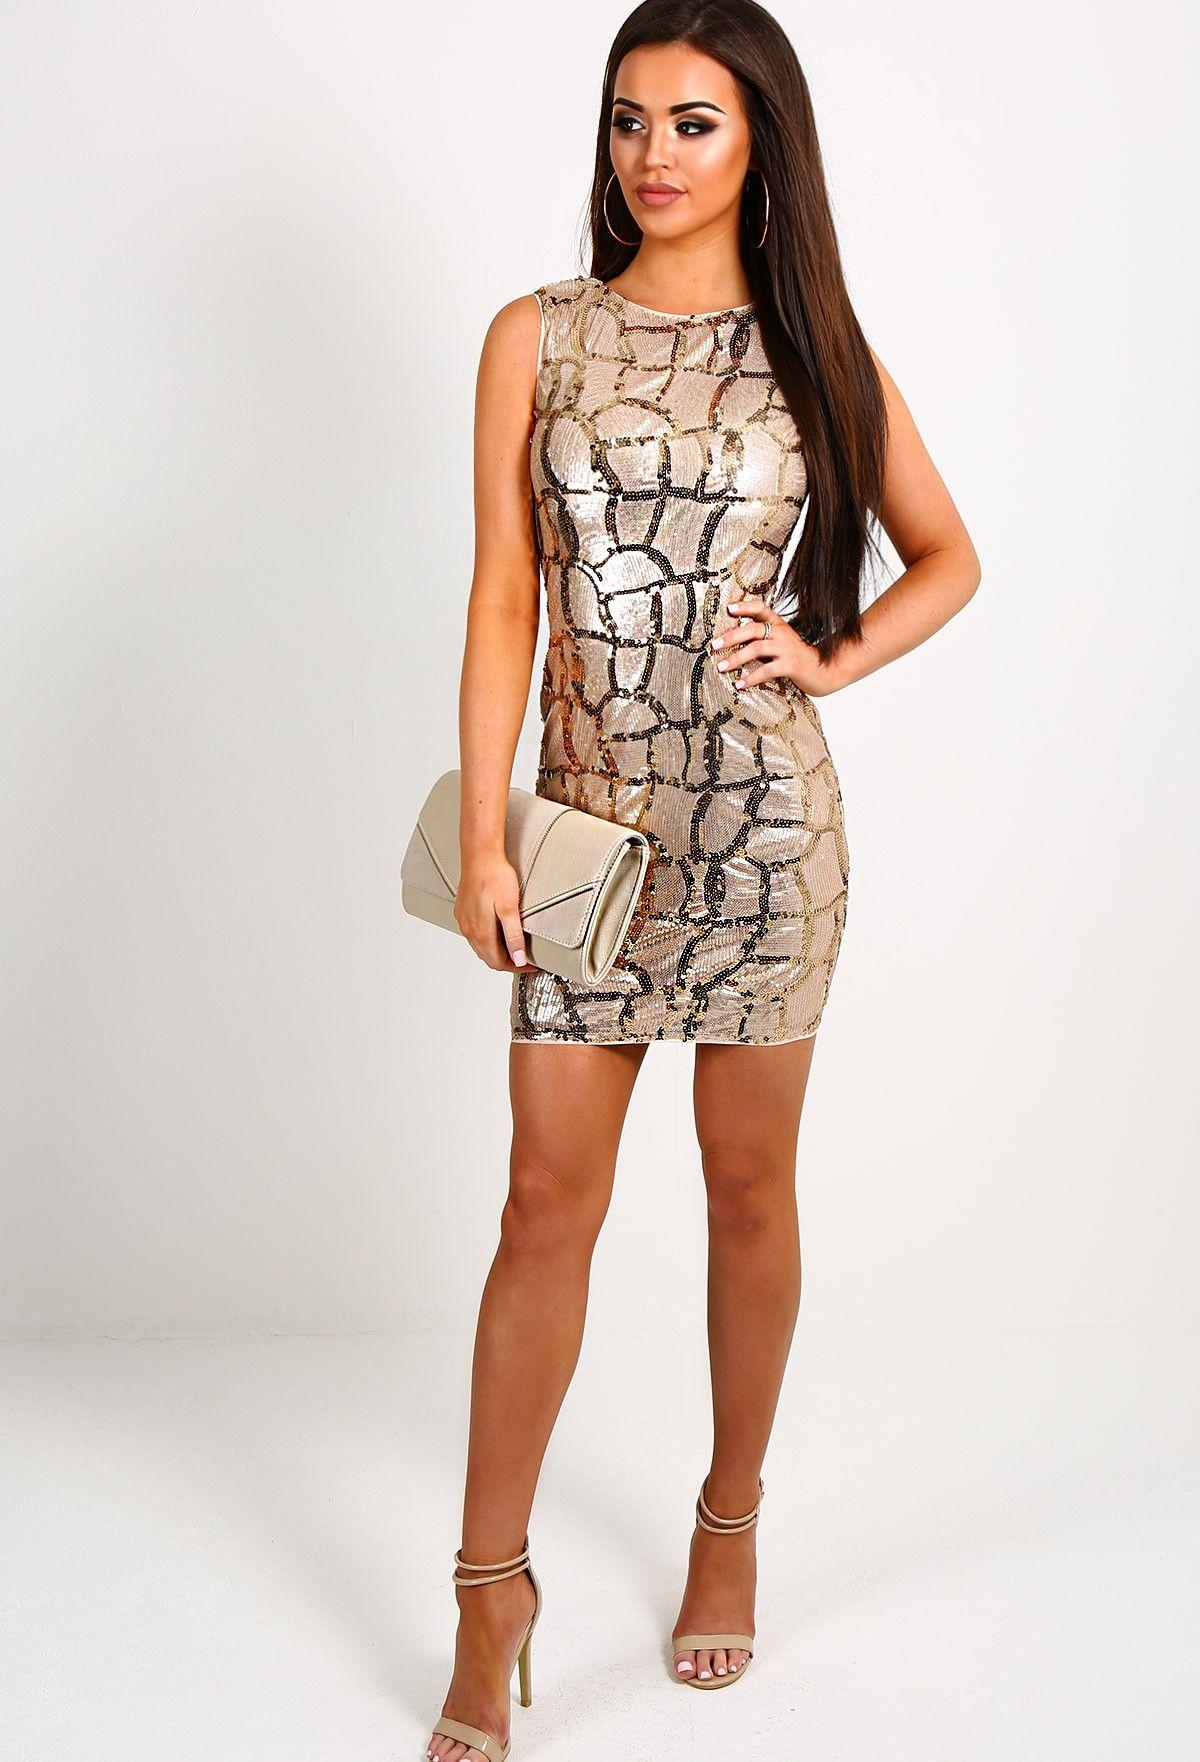 Buy motel coco backless bodycon dress in hot pink at motel rocks - Sinead Rose Gold Crackle Sequin Bodycon Dress